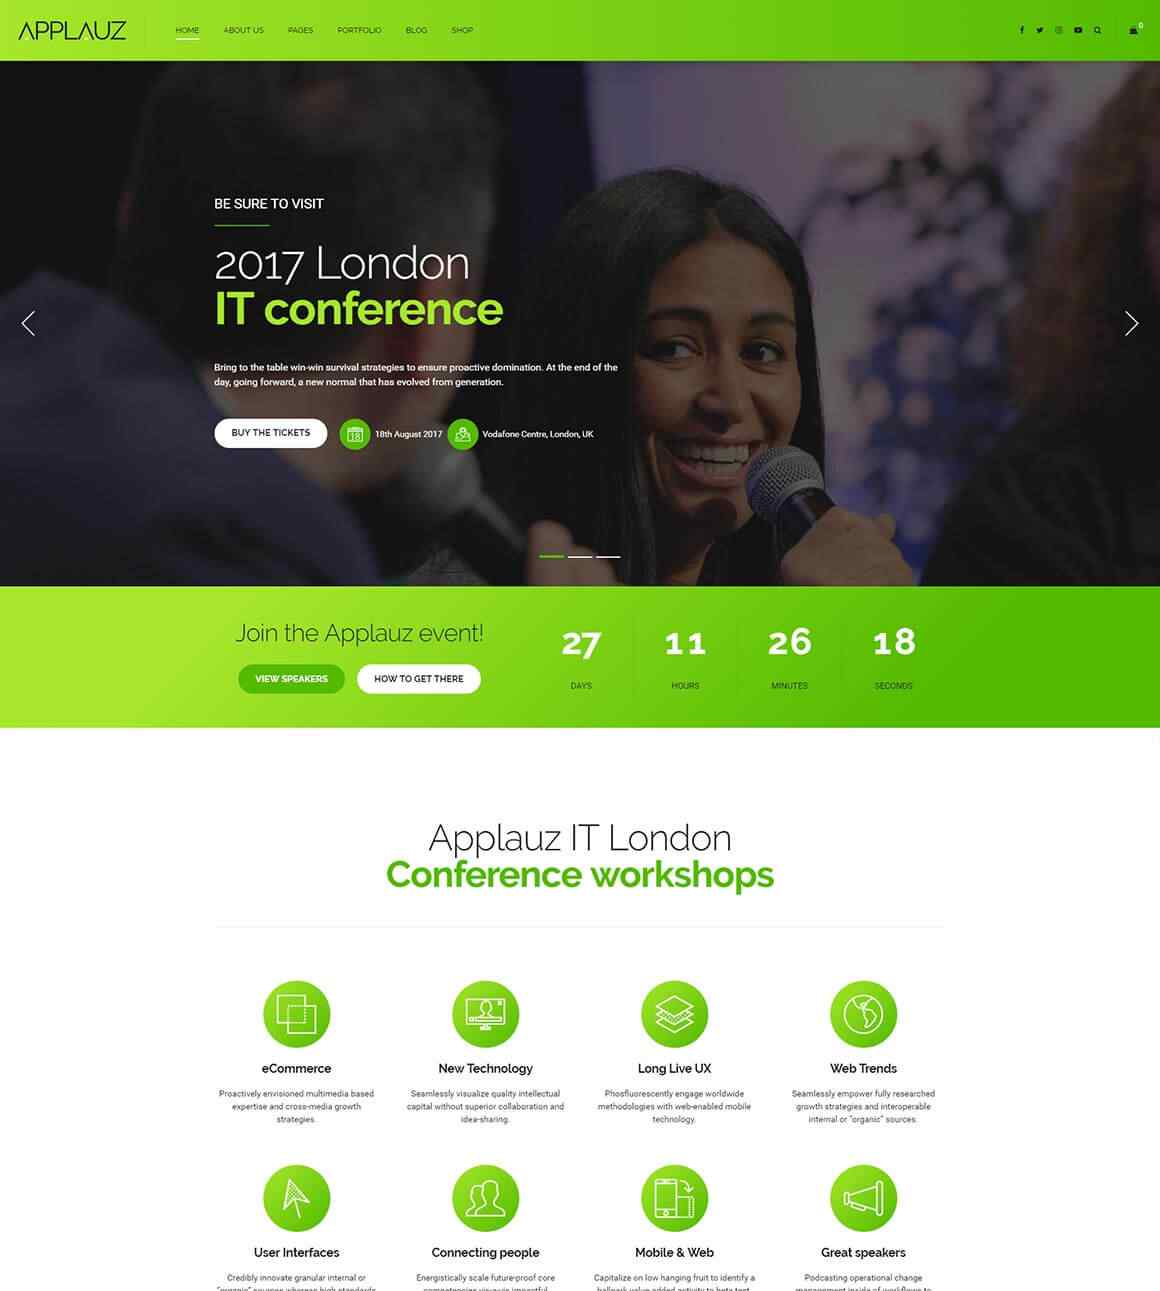 2017 London IT conference